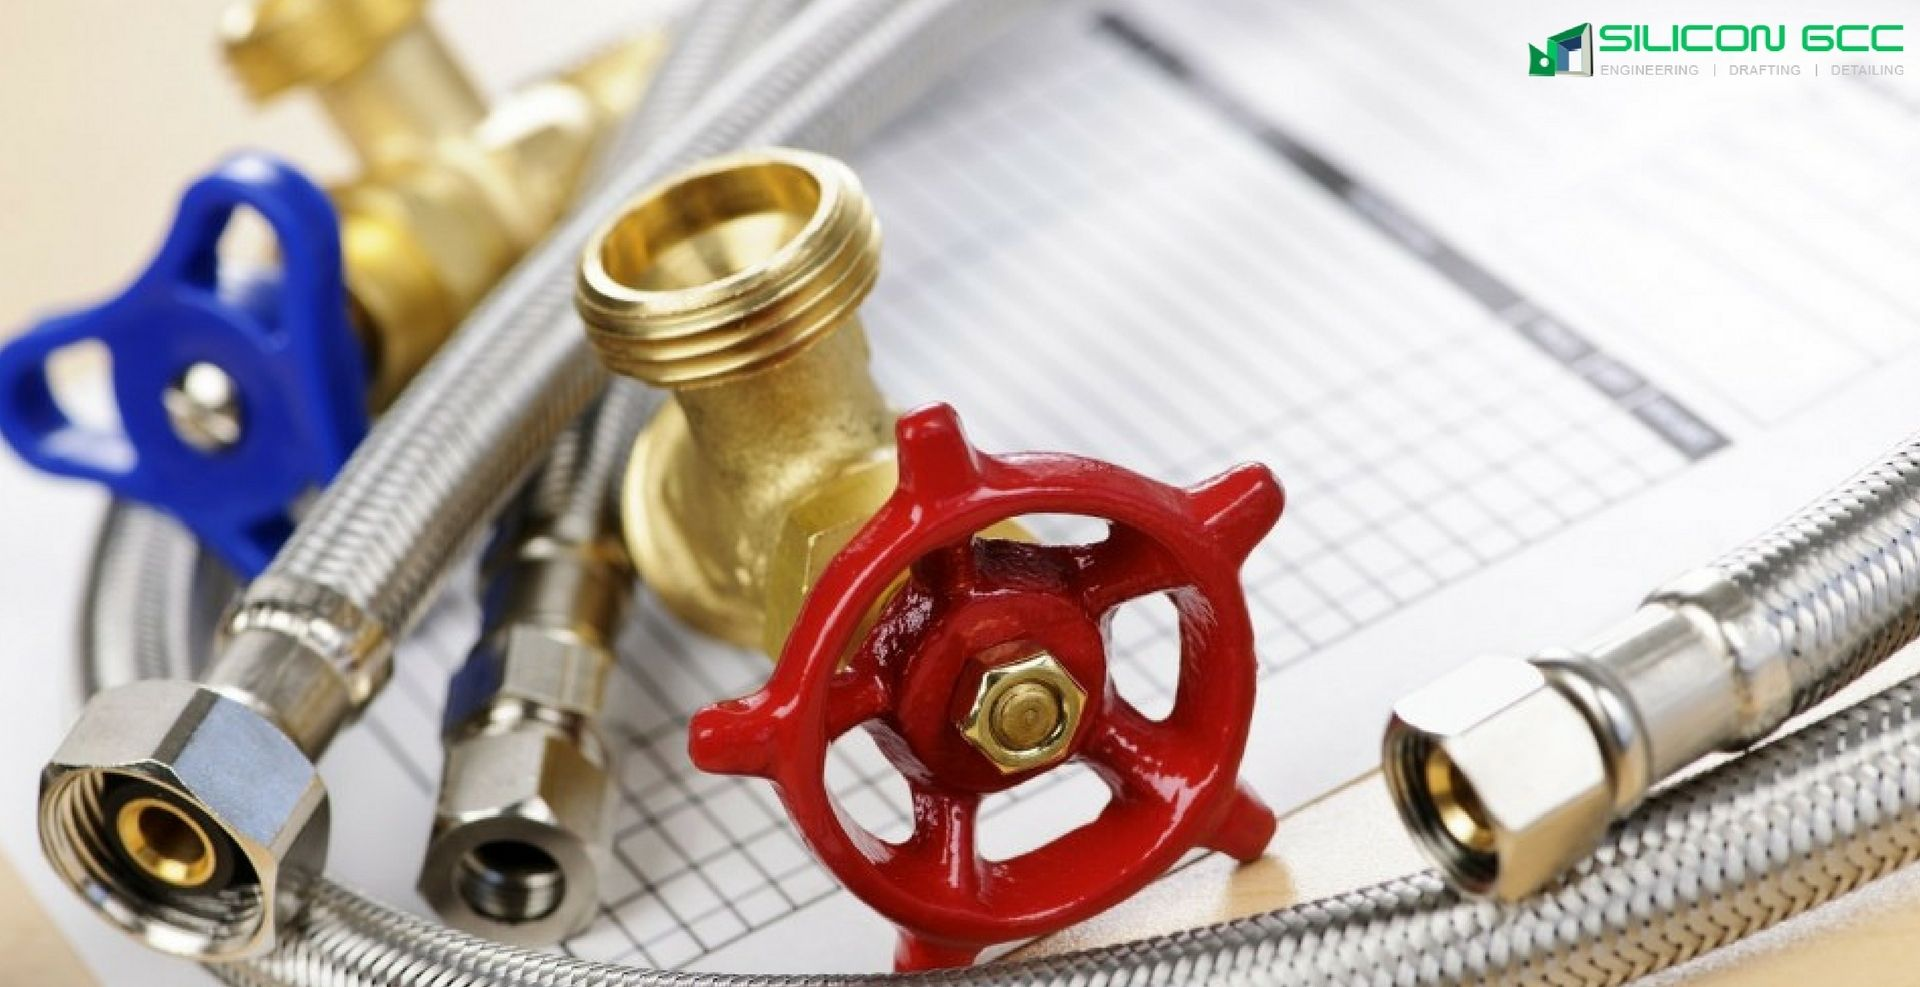 Pin on Plumbing / Piping Engineering Services